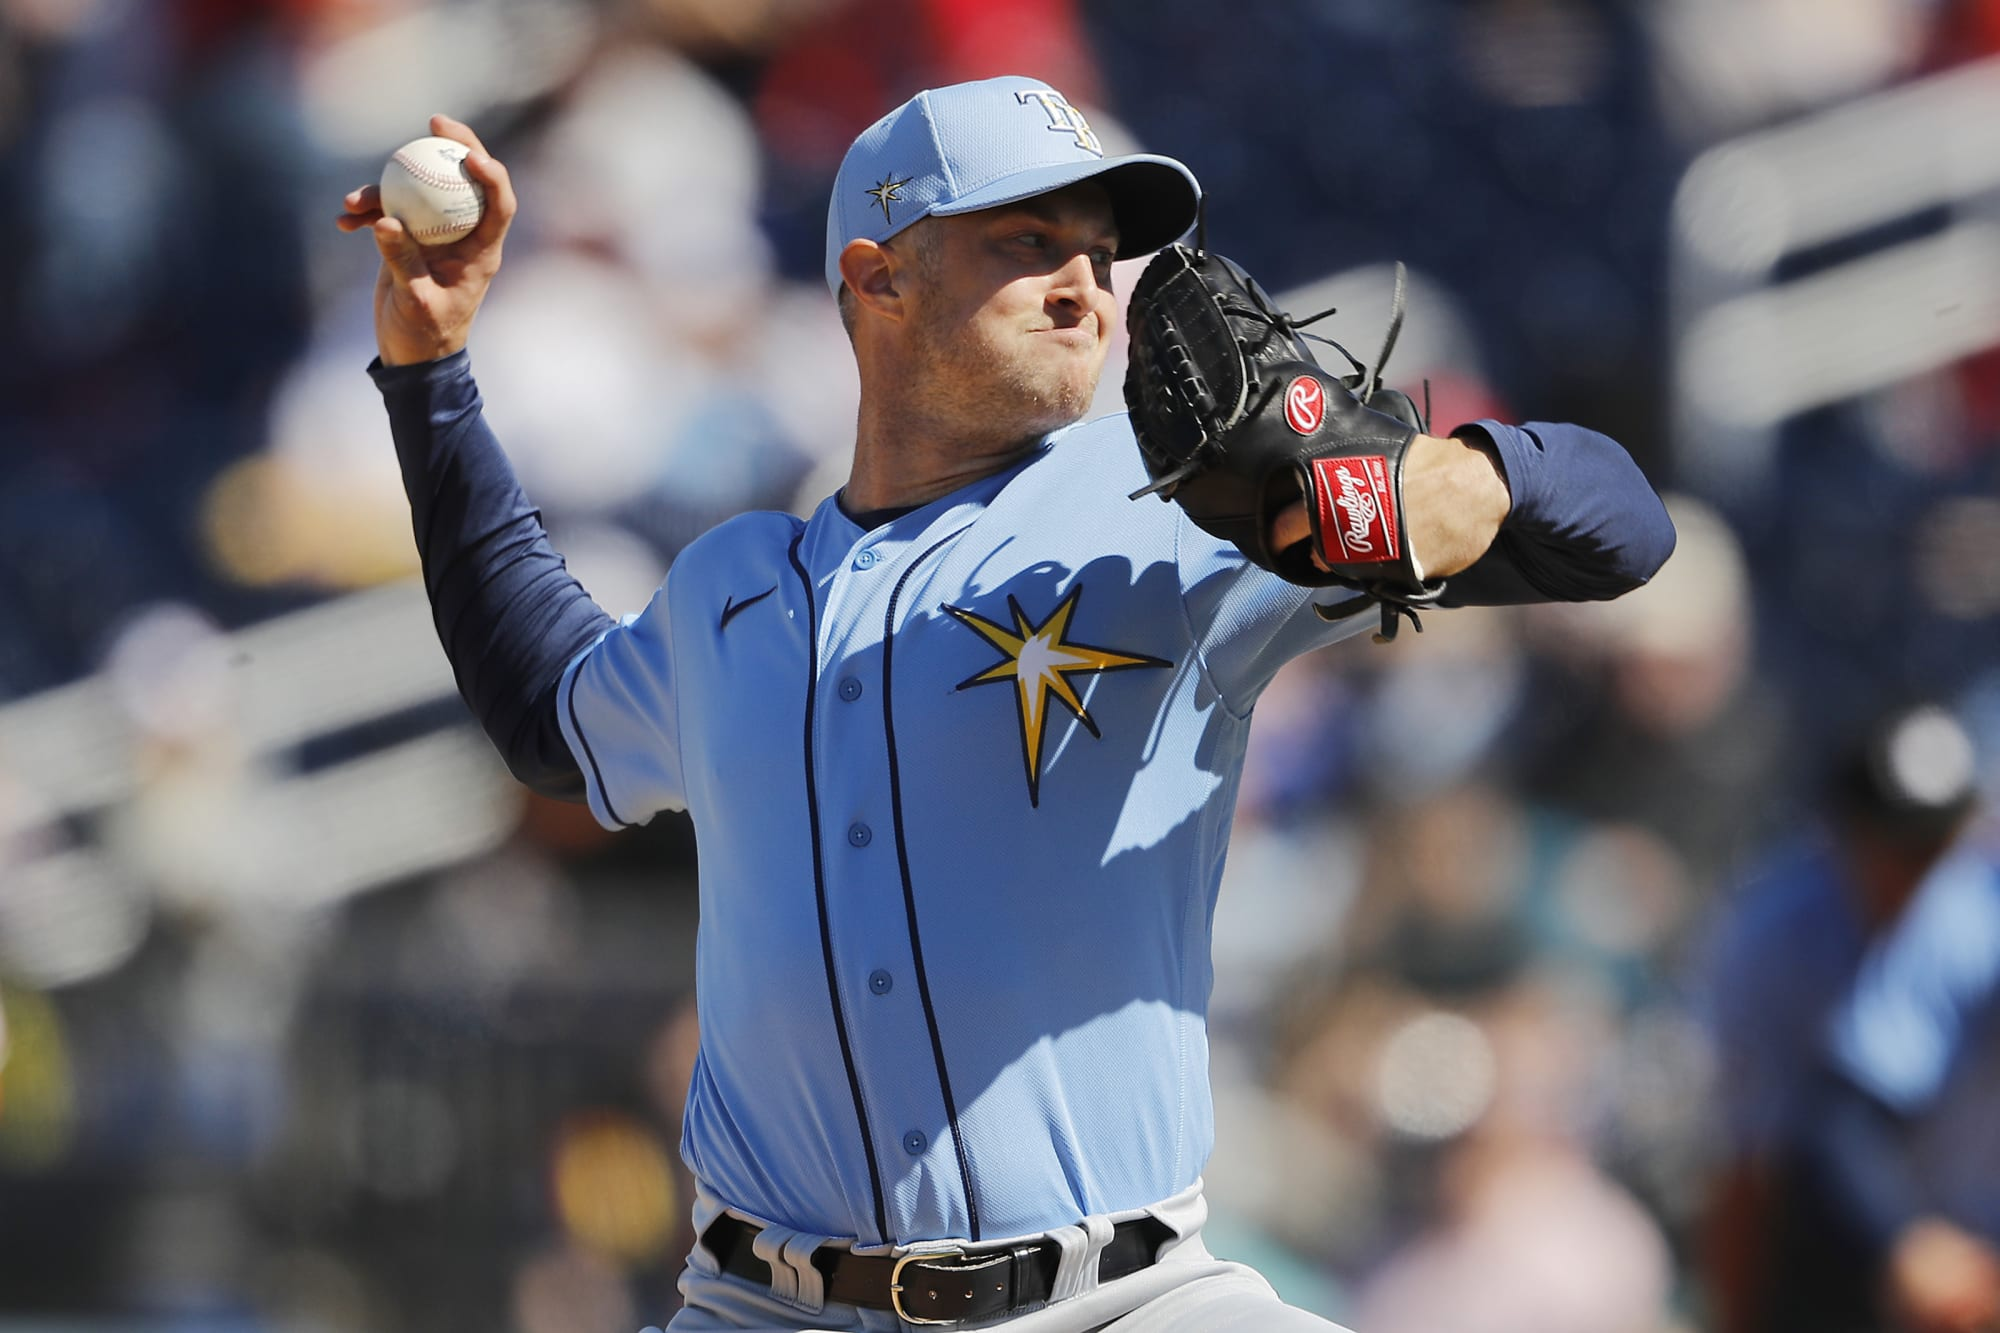 Tampa Bay Rays: Trevor Richards dominates in simulated game